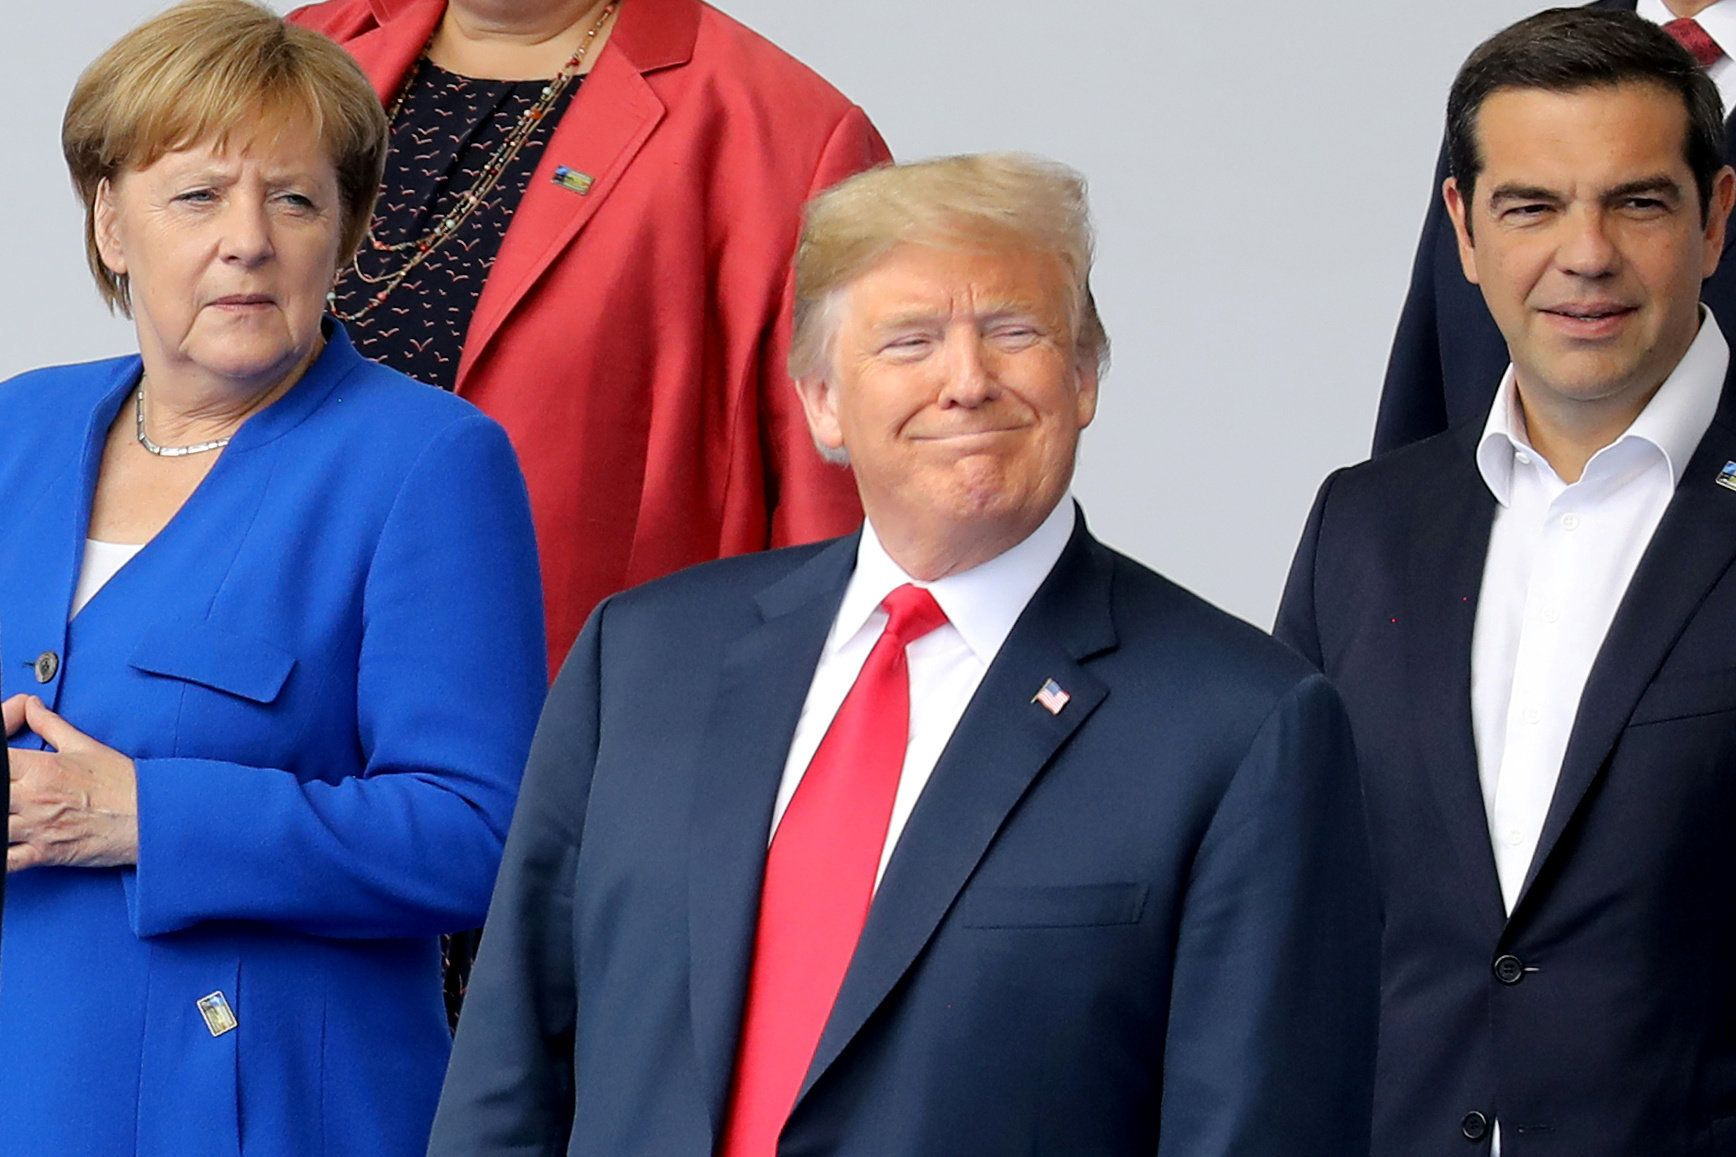 German Chancellor Angela Merkel, U.S. President Donald Trump and Greek Prime Minister Alexis Tsipras pose for a family picture ahead of the opening ceremony of the NATO (North Atlantic Treaty Organization) summit, at the NATO headquarters in Brussels, Belgium July 11, 2018. Ludovic Marin/Pool via REUTERS